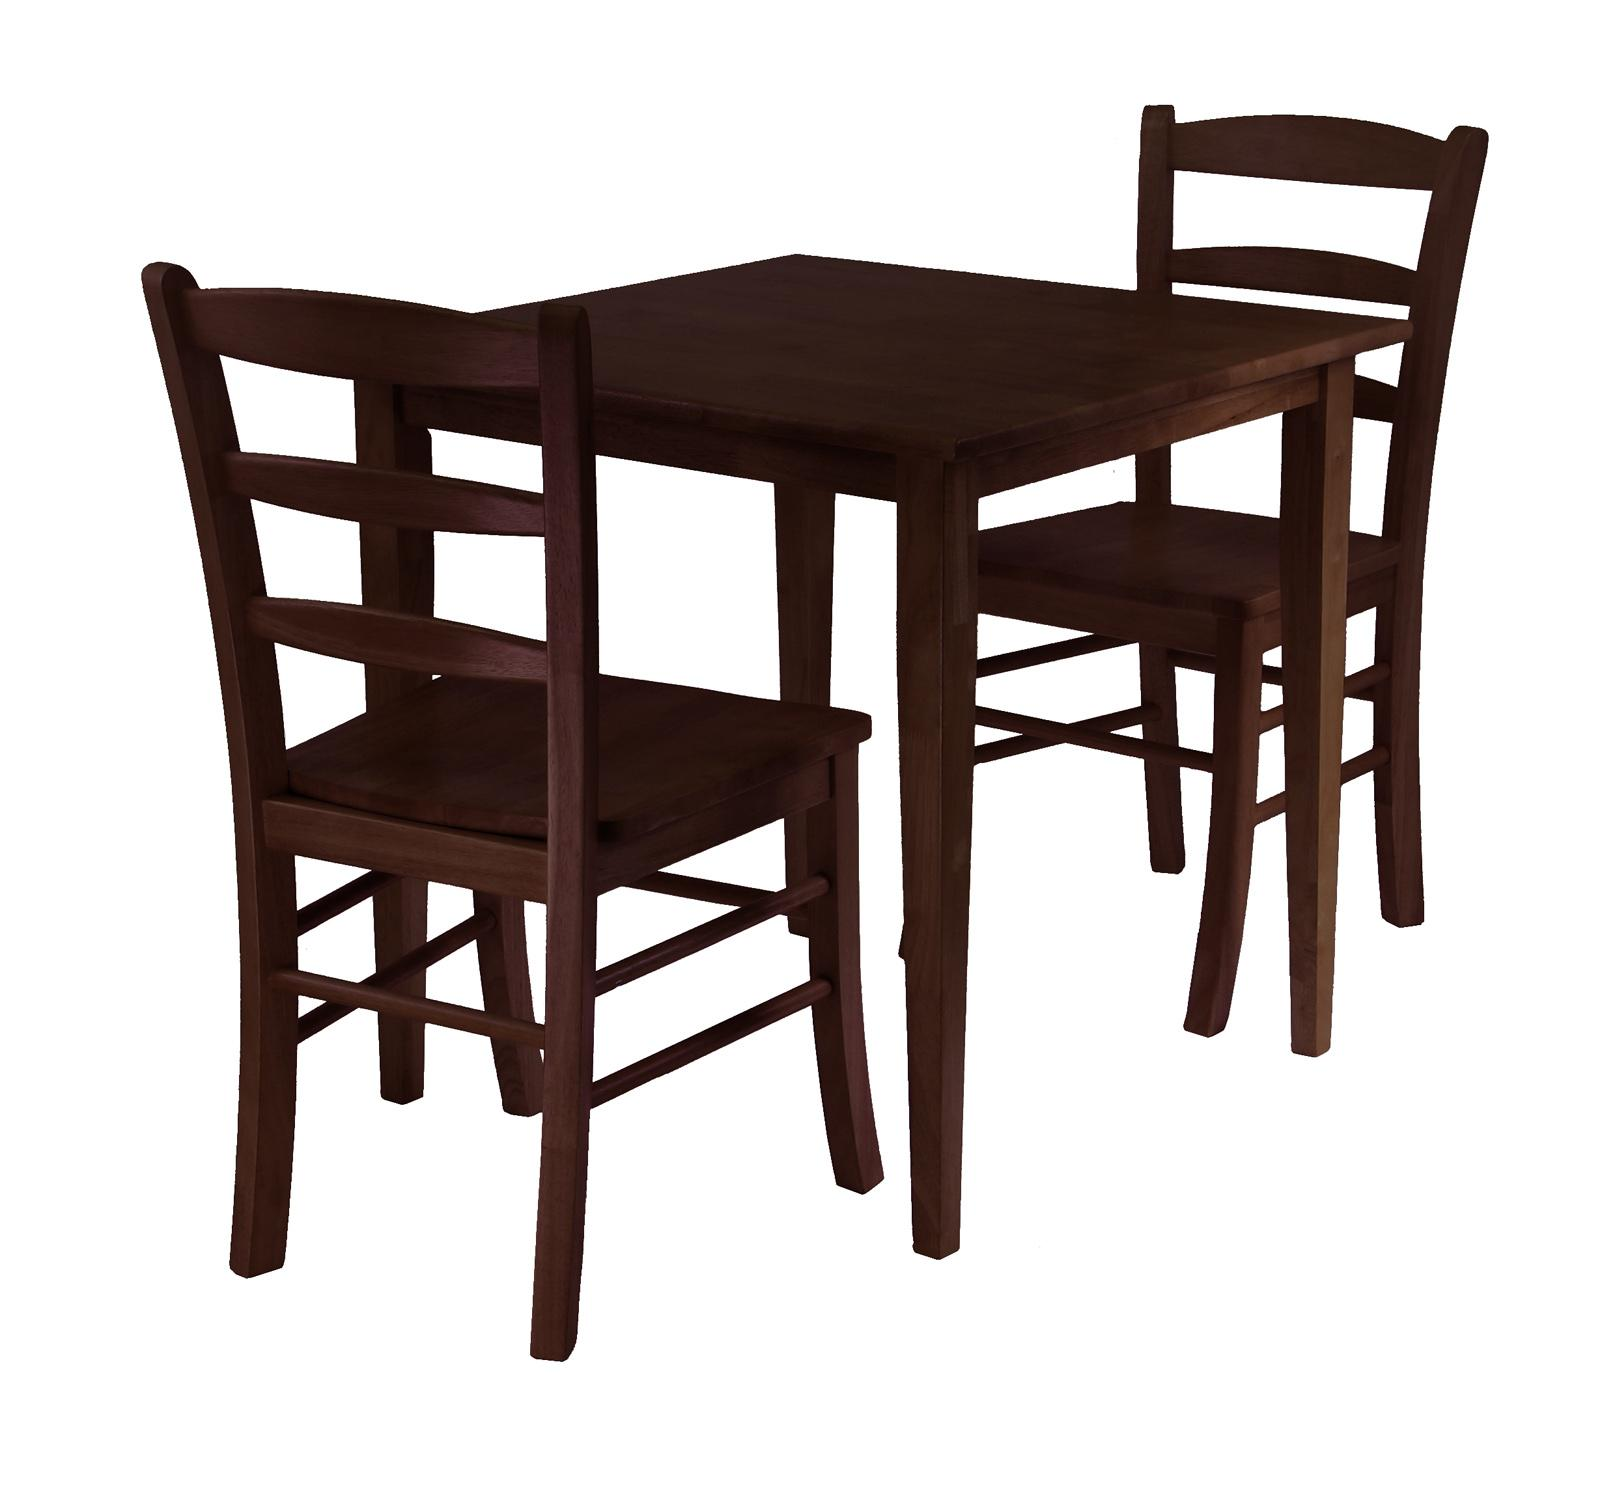 groveland chairs small kitchen table set Groveland 3pc Square Dining Table with 2 Chairs